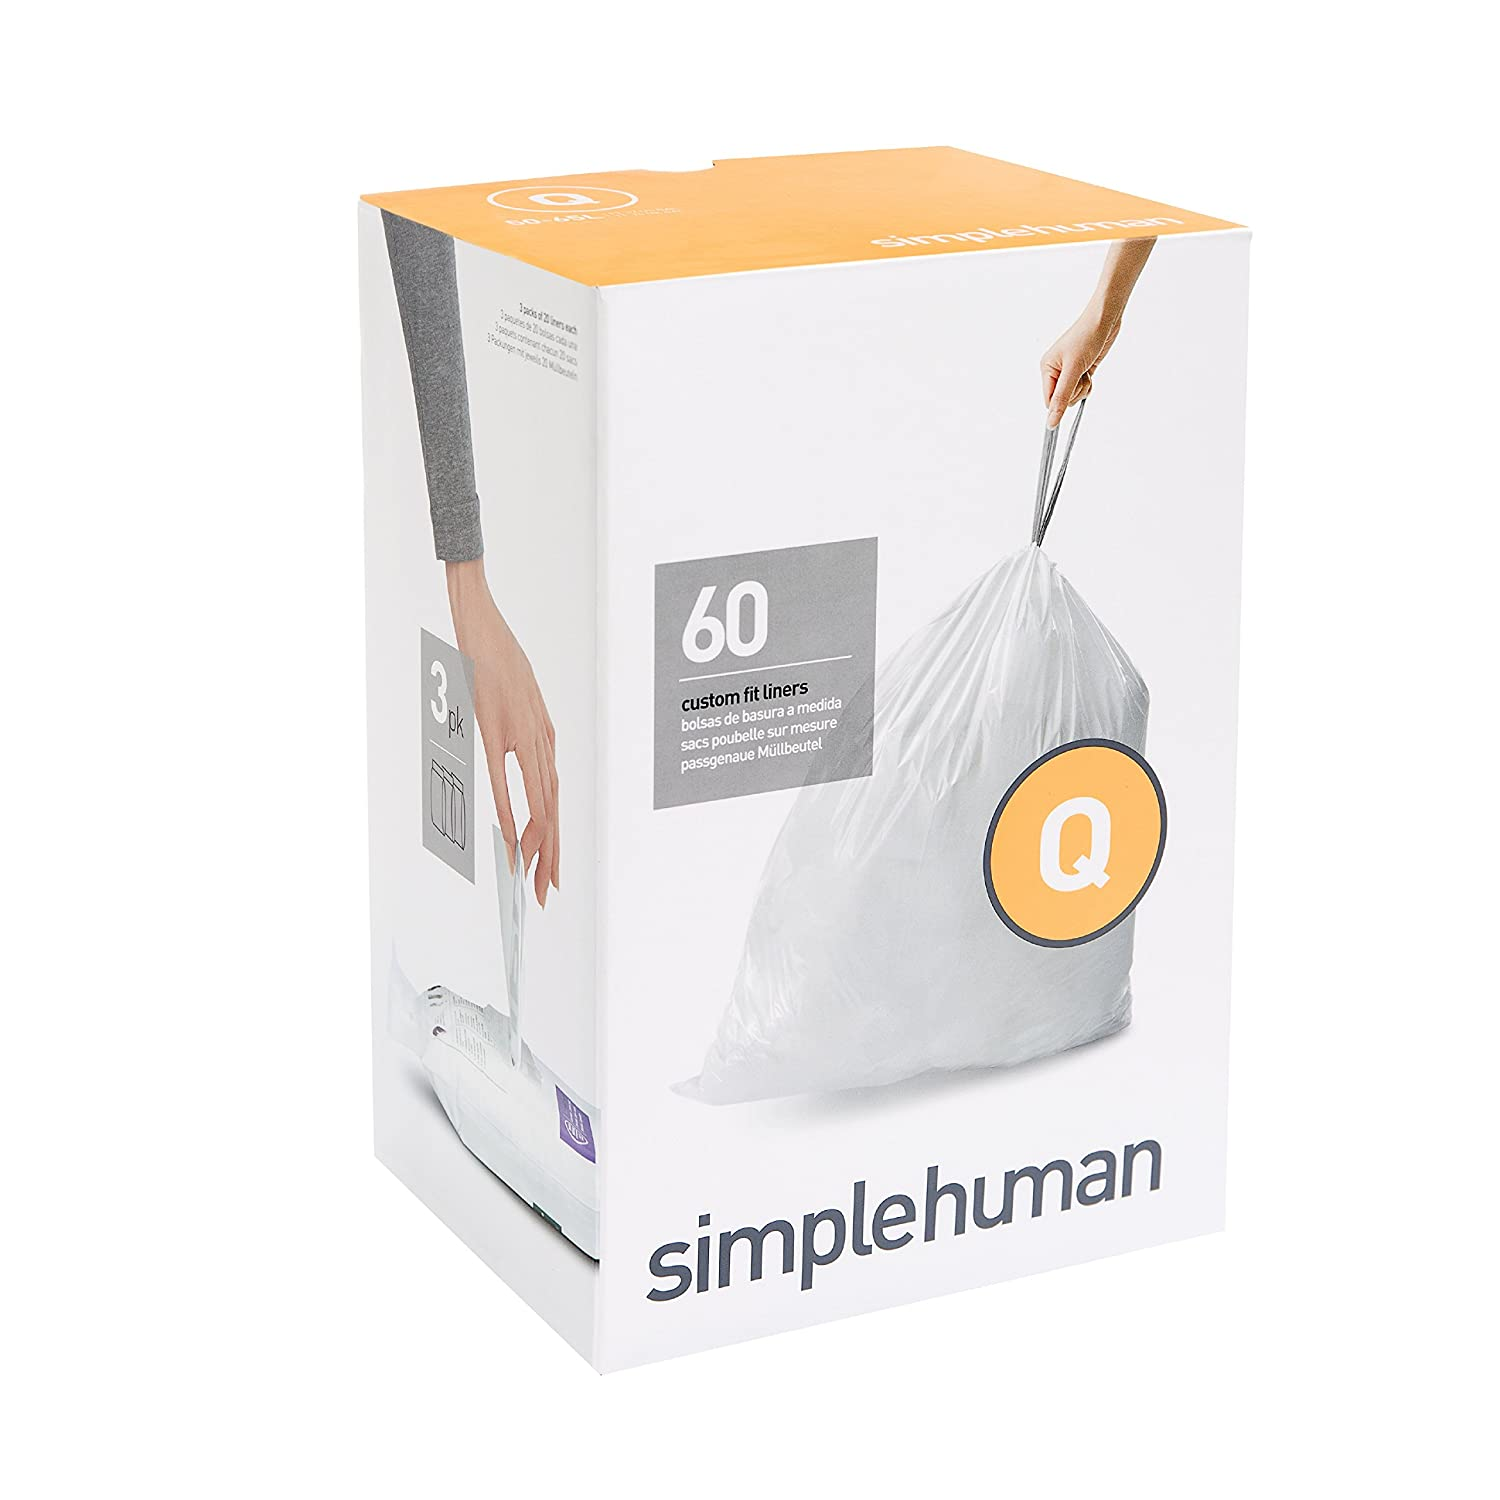 Amazon.com: simplehuman Code Q Custom Fit Liners, Extra Large, Extra Strong  Trash Bags, 50-65 Liter / 13-17 Gallon, 3 Refill Packs (60 Count): Home &  ...